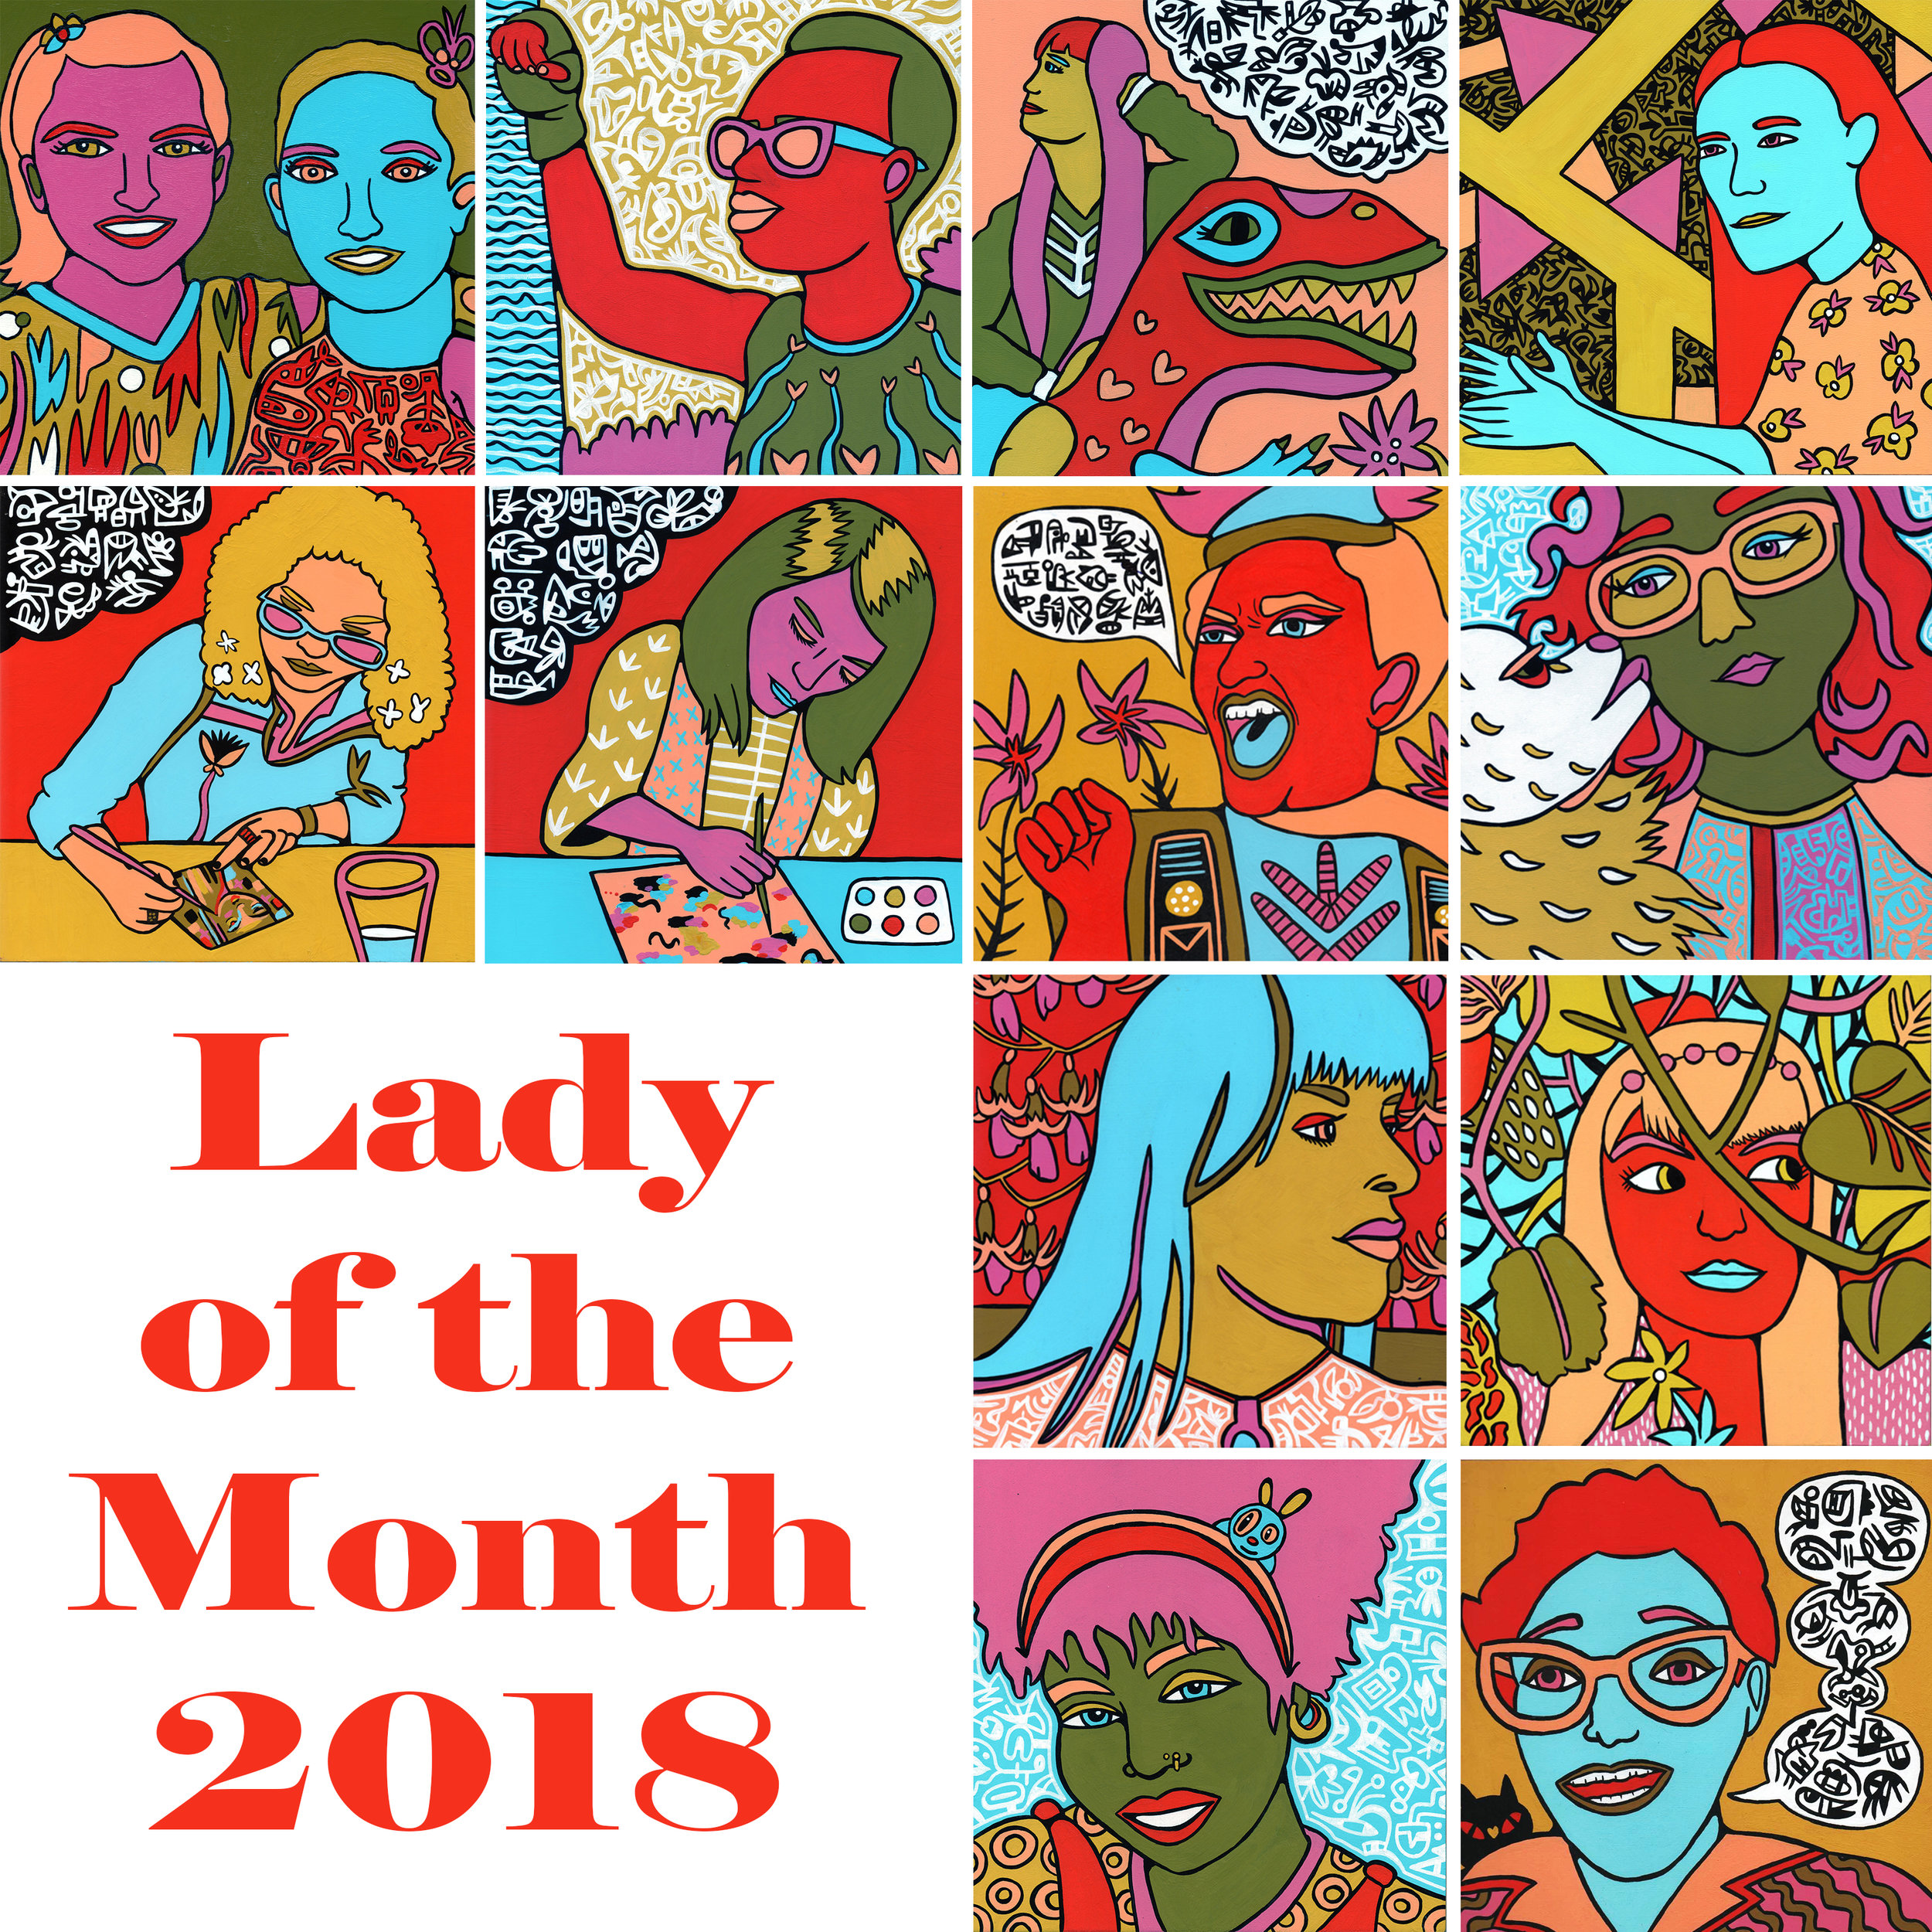 Lady-of-the-Month-Collection-2018.jpg